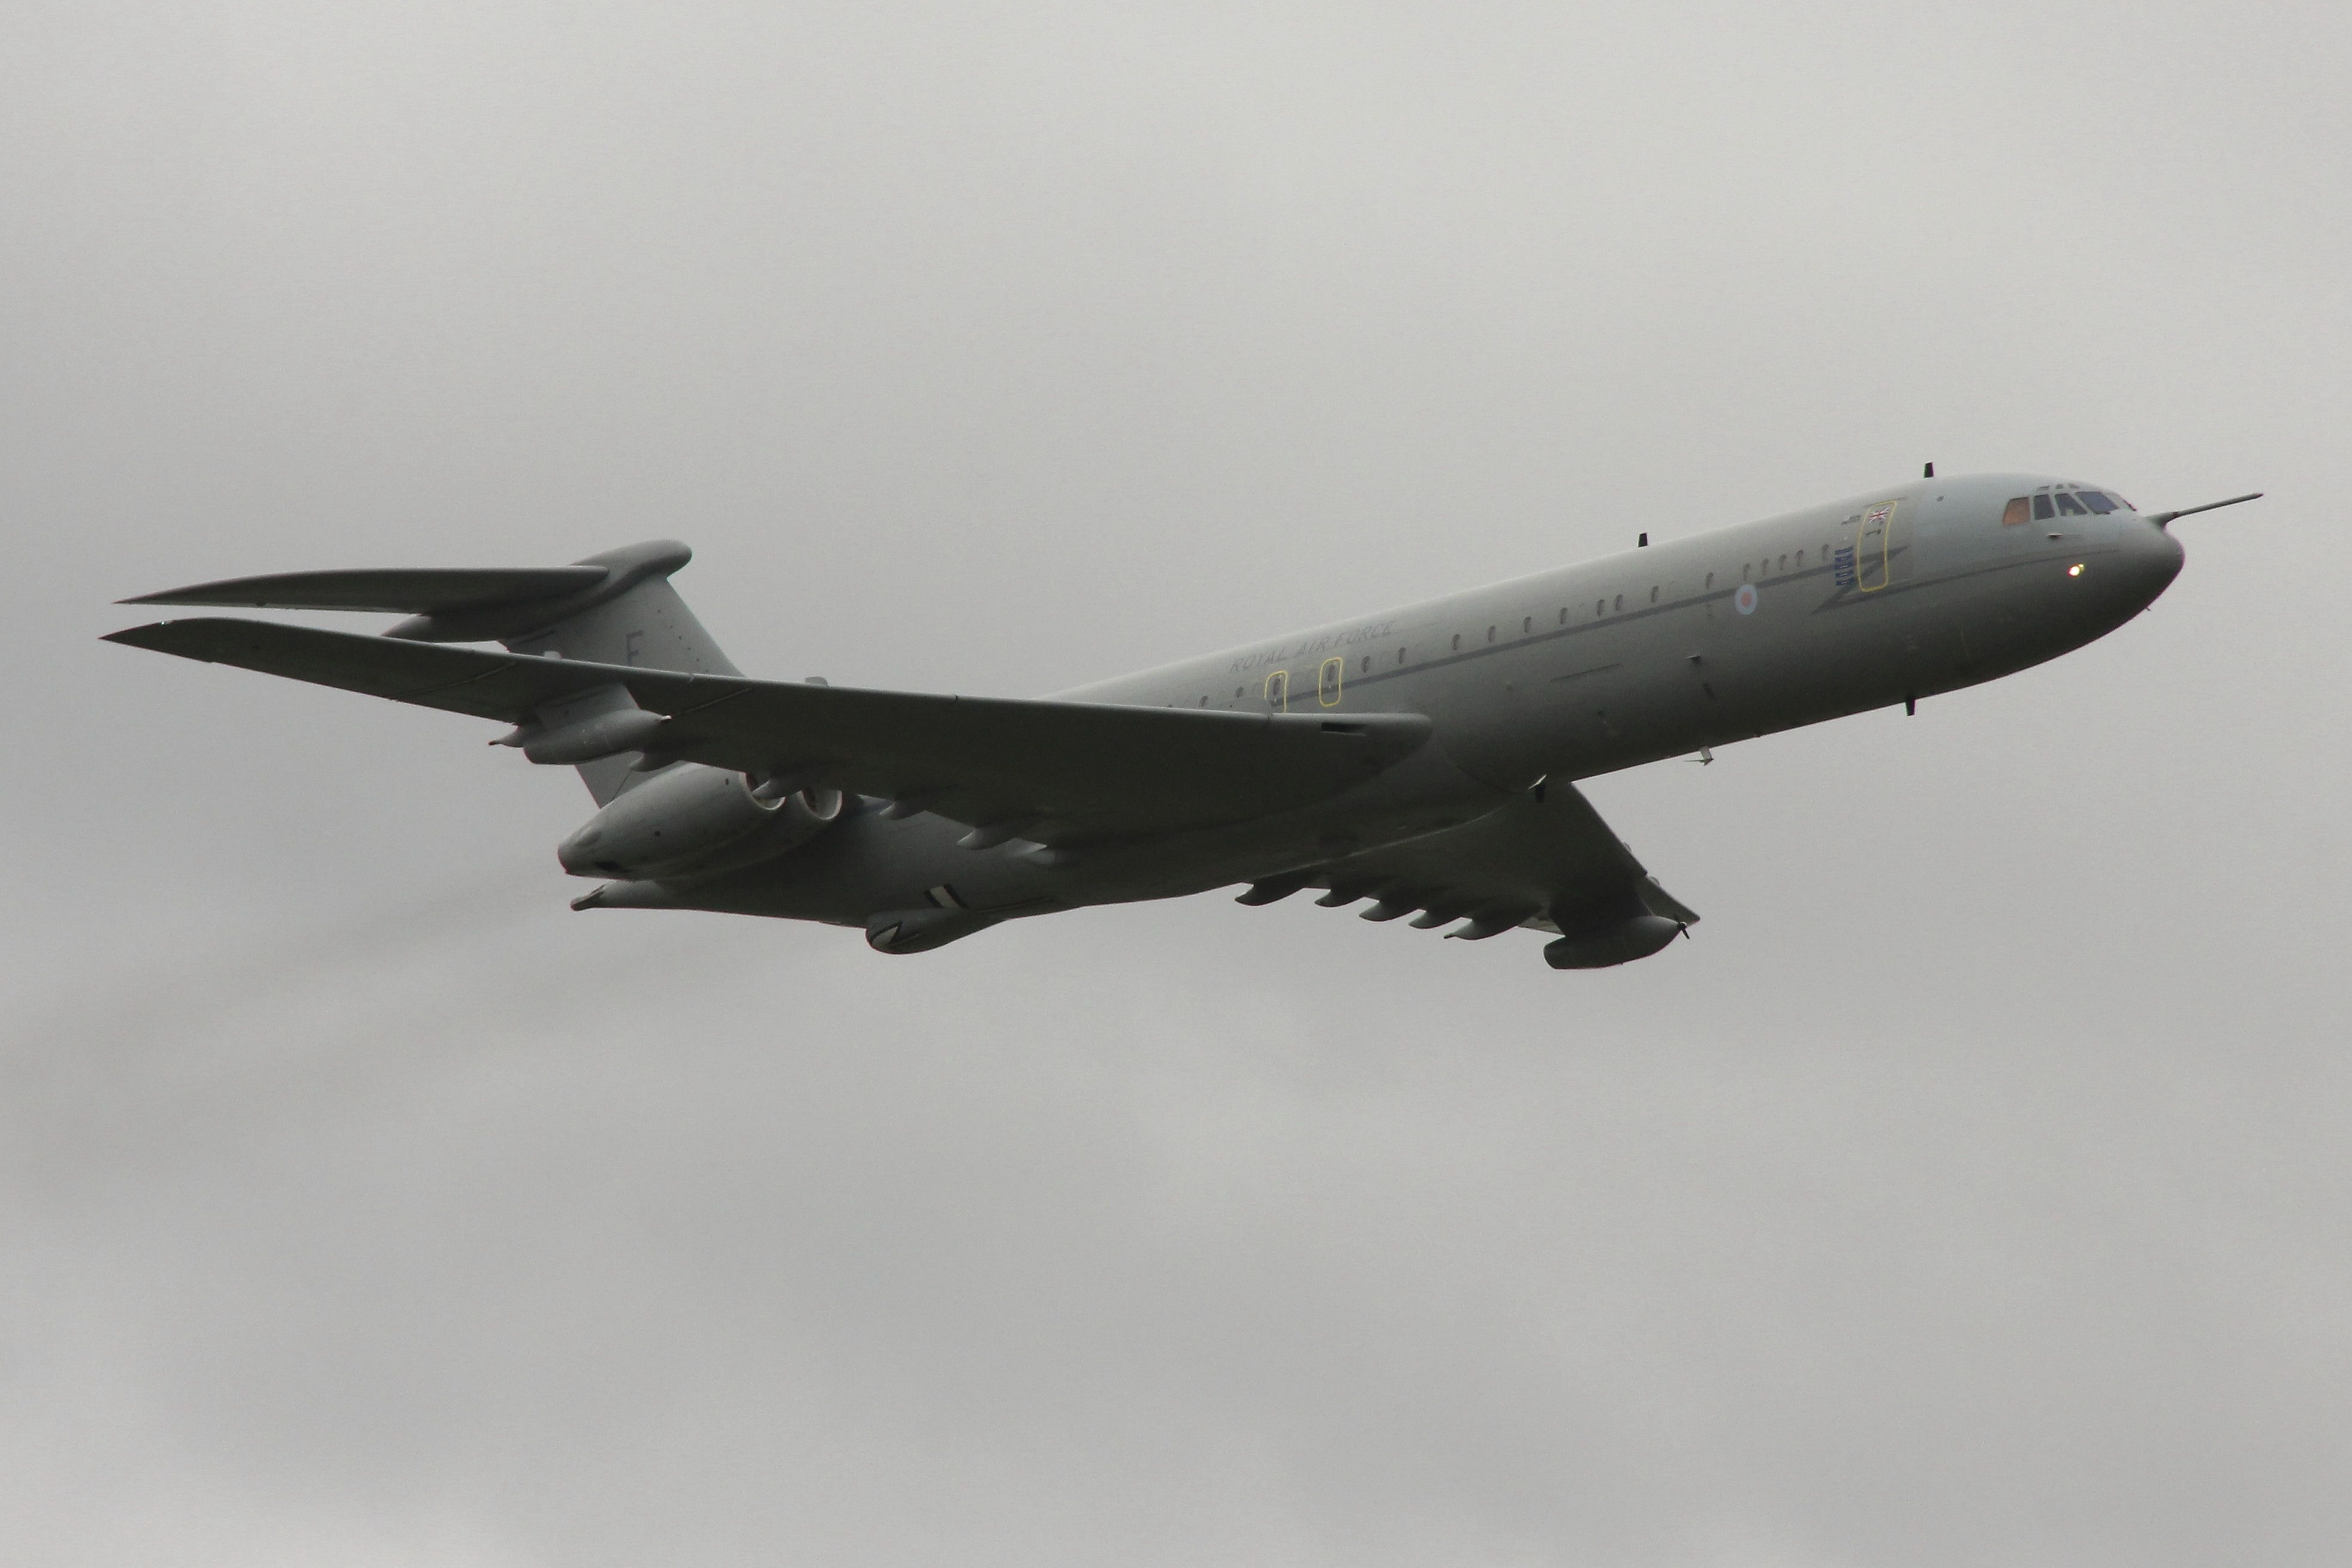 Royal Air Force Vickers VC10 ZA147 in 2020 Vickers vc10